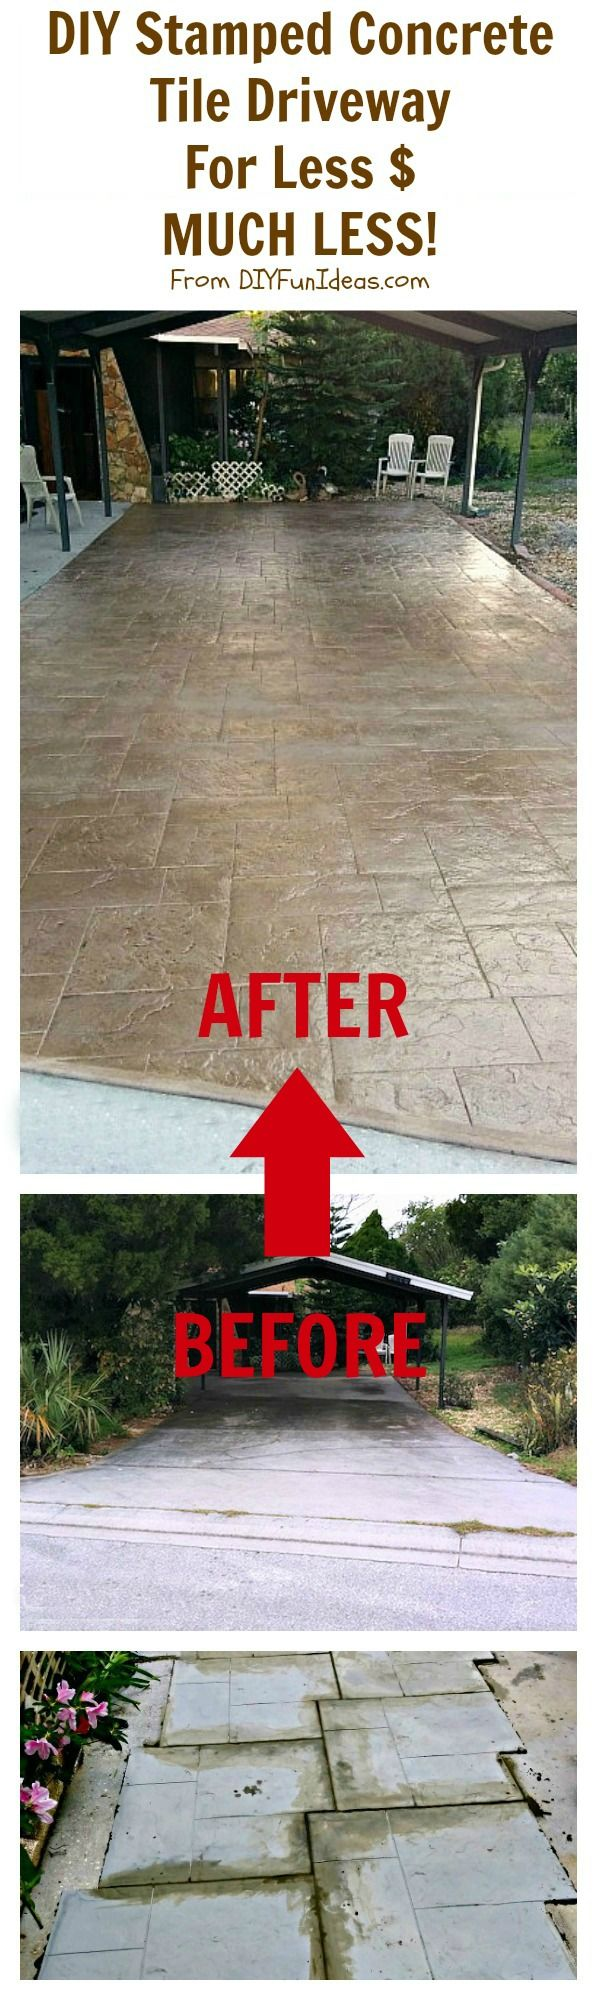 DIY STAMPED CONCRETE TILE DRIVEWAY FOR LESS $...MUCH LESS!